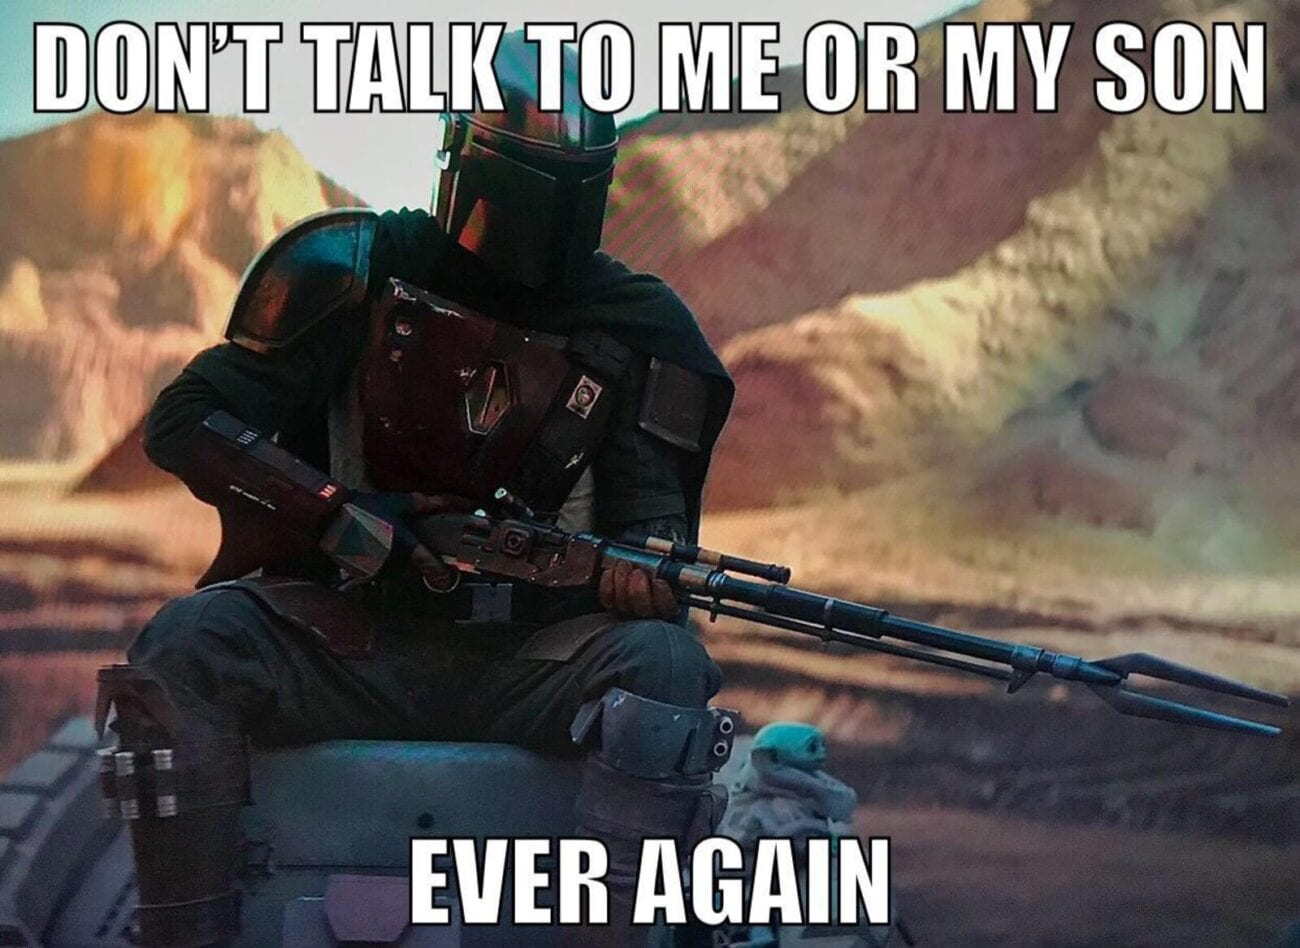 'The Mandalorian' is set to return to Disney+ and we can't be more excited. Here are all of the newest memes fans have made in celebration of season 2.